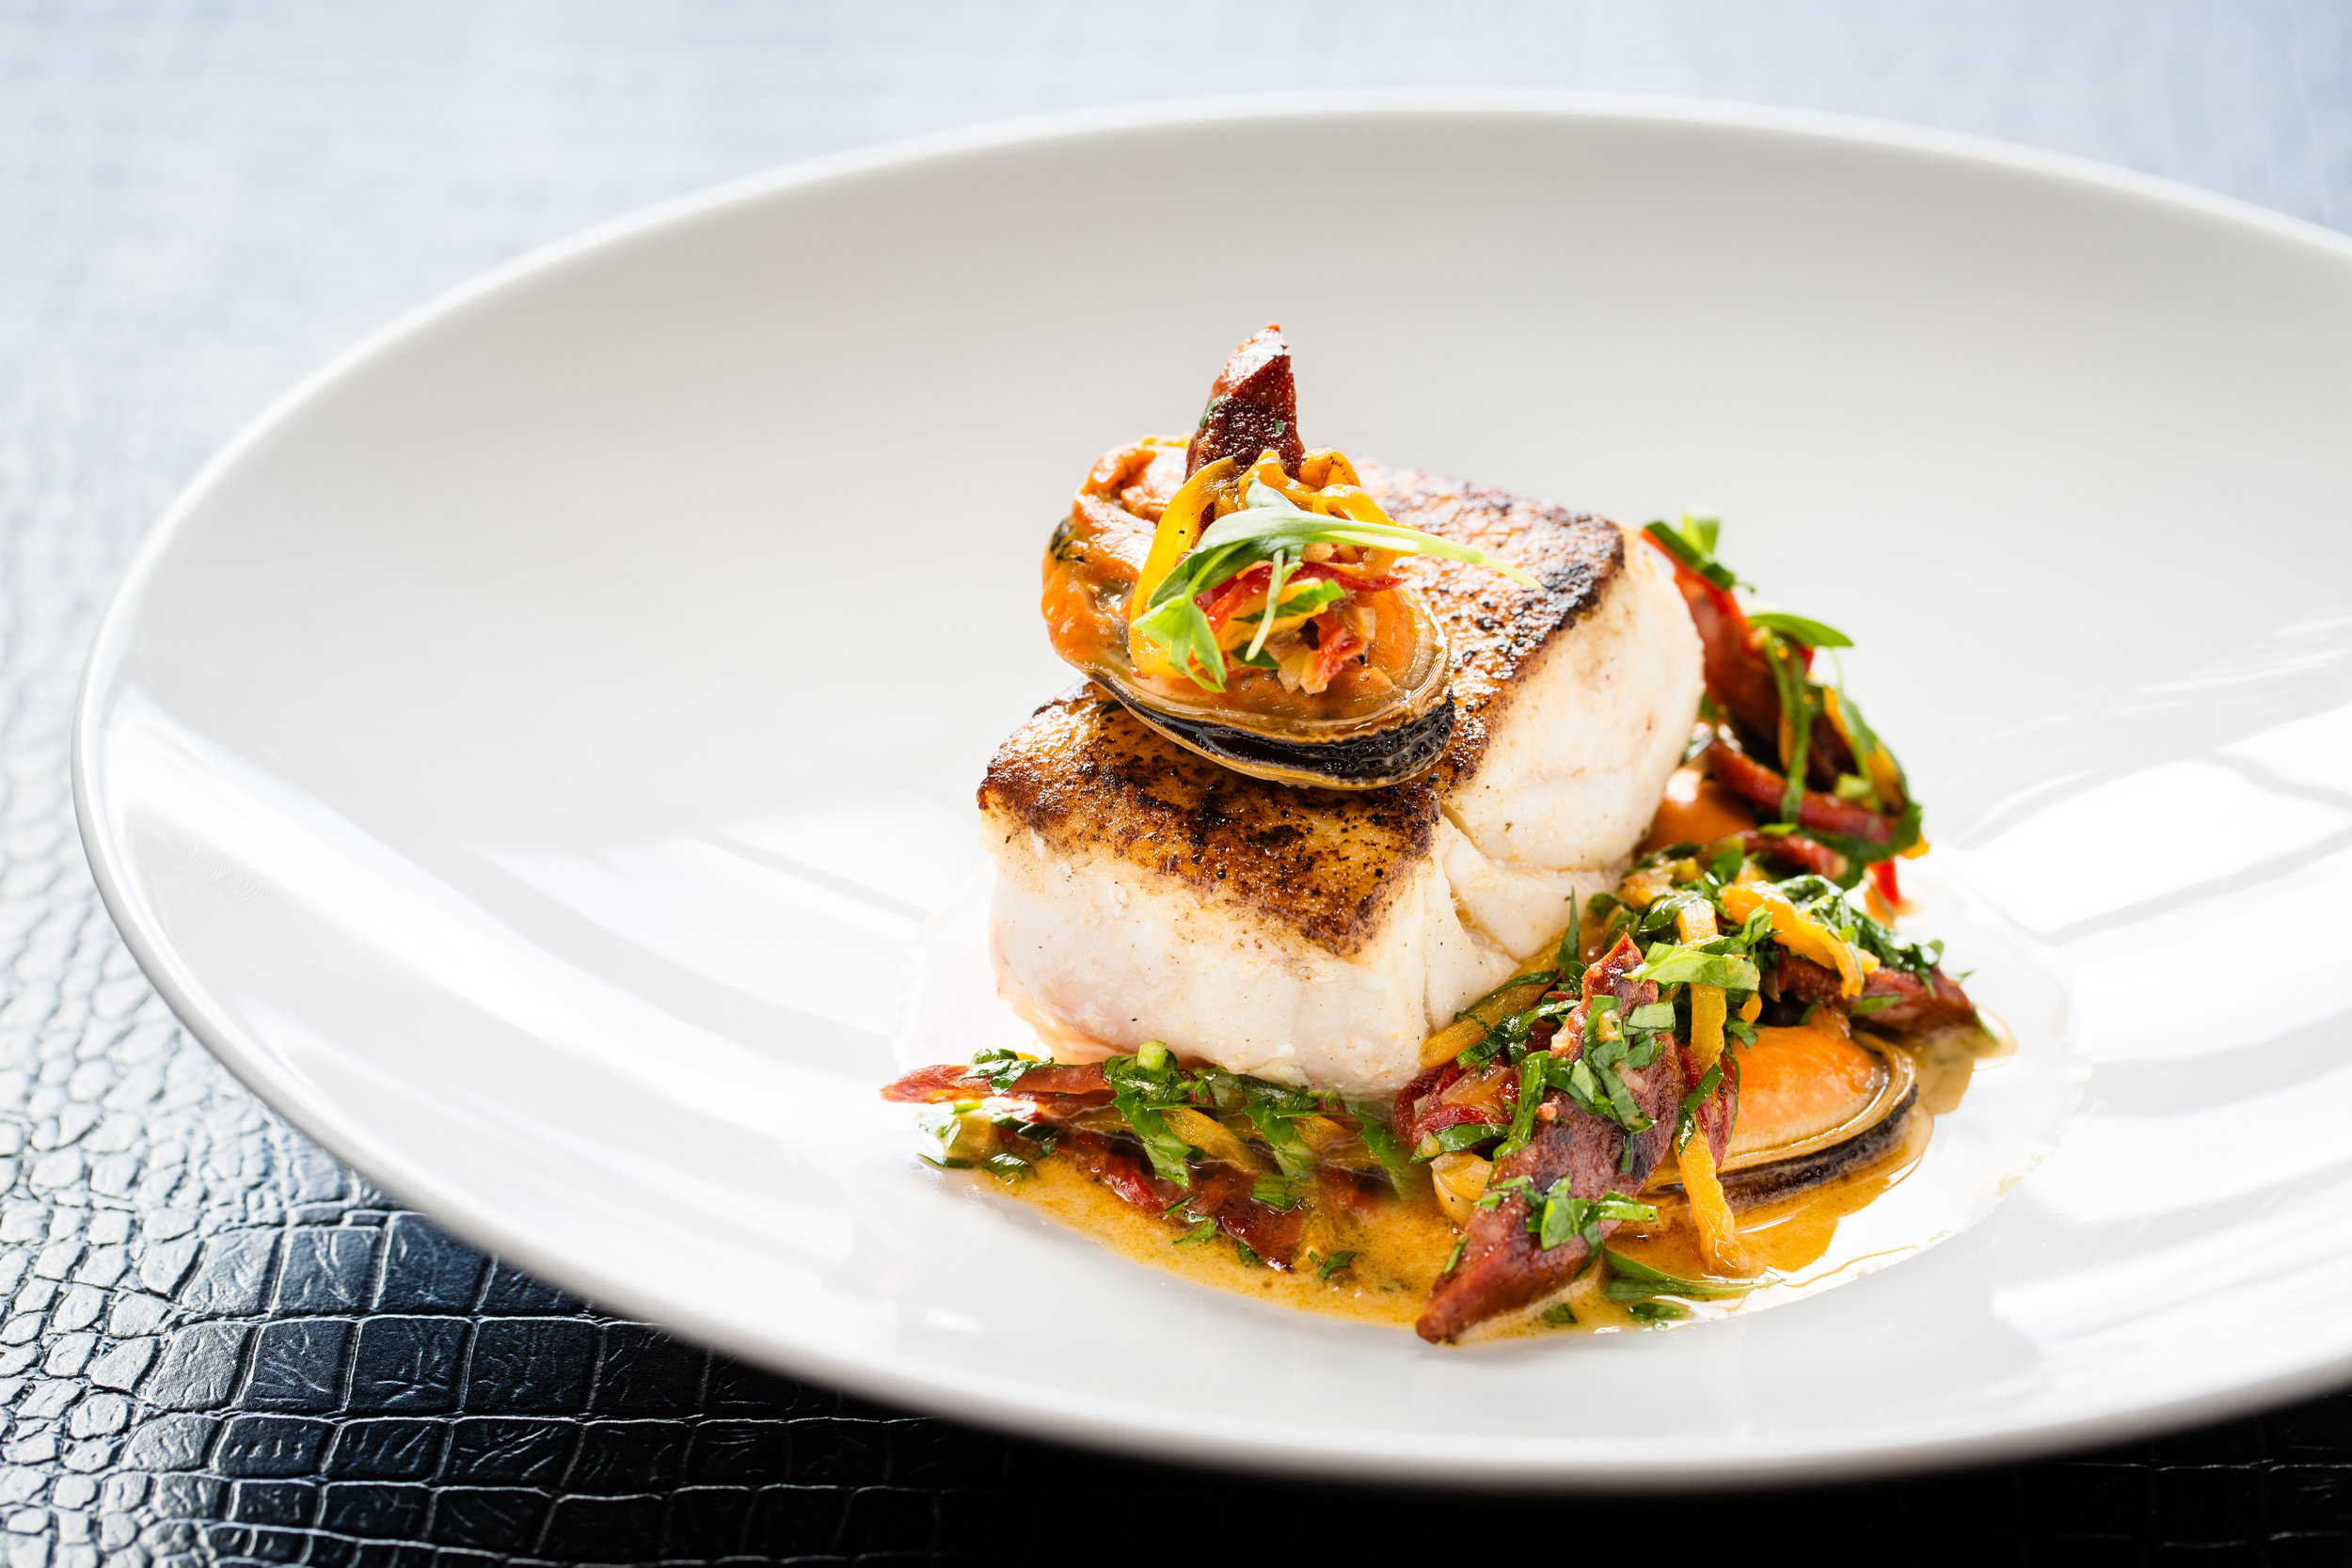 Florida grouper with mussels, chorizo and aged sherry vinegar